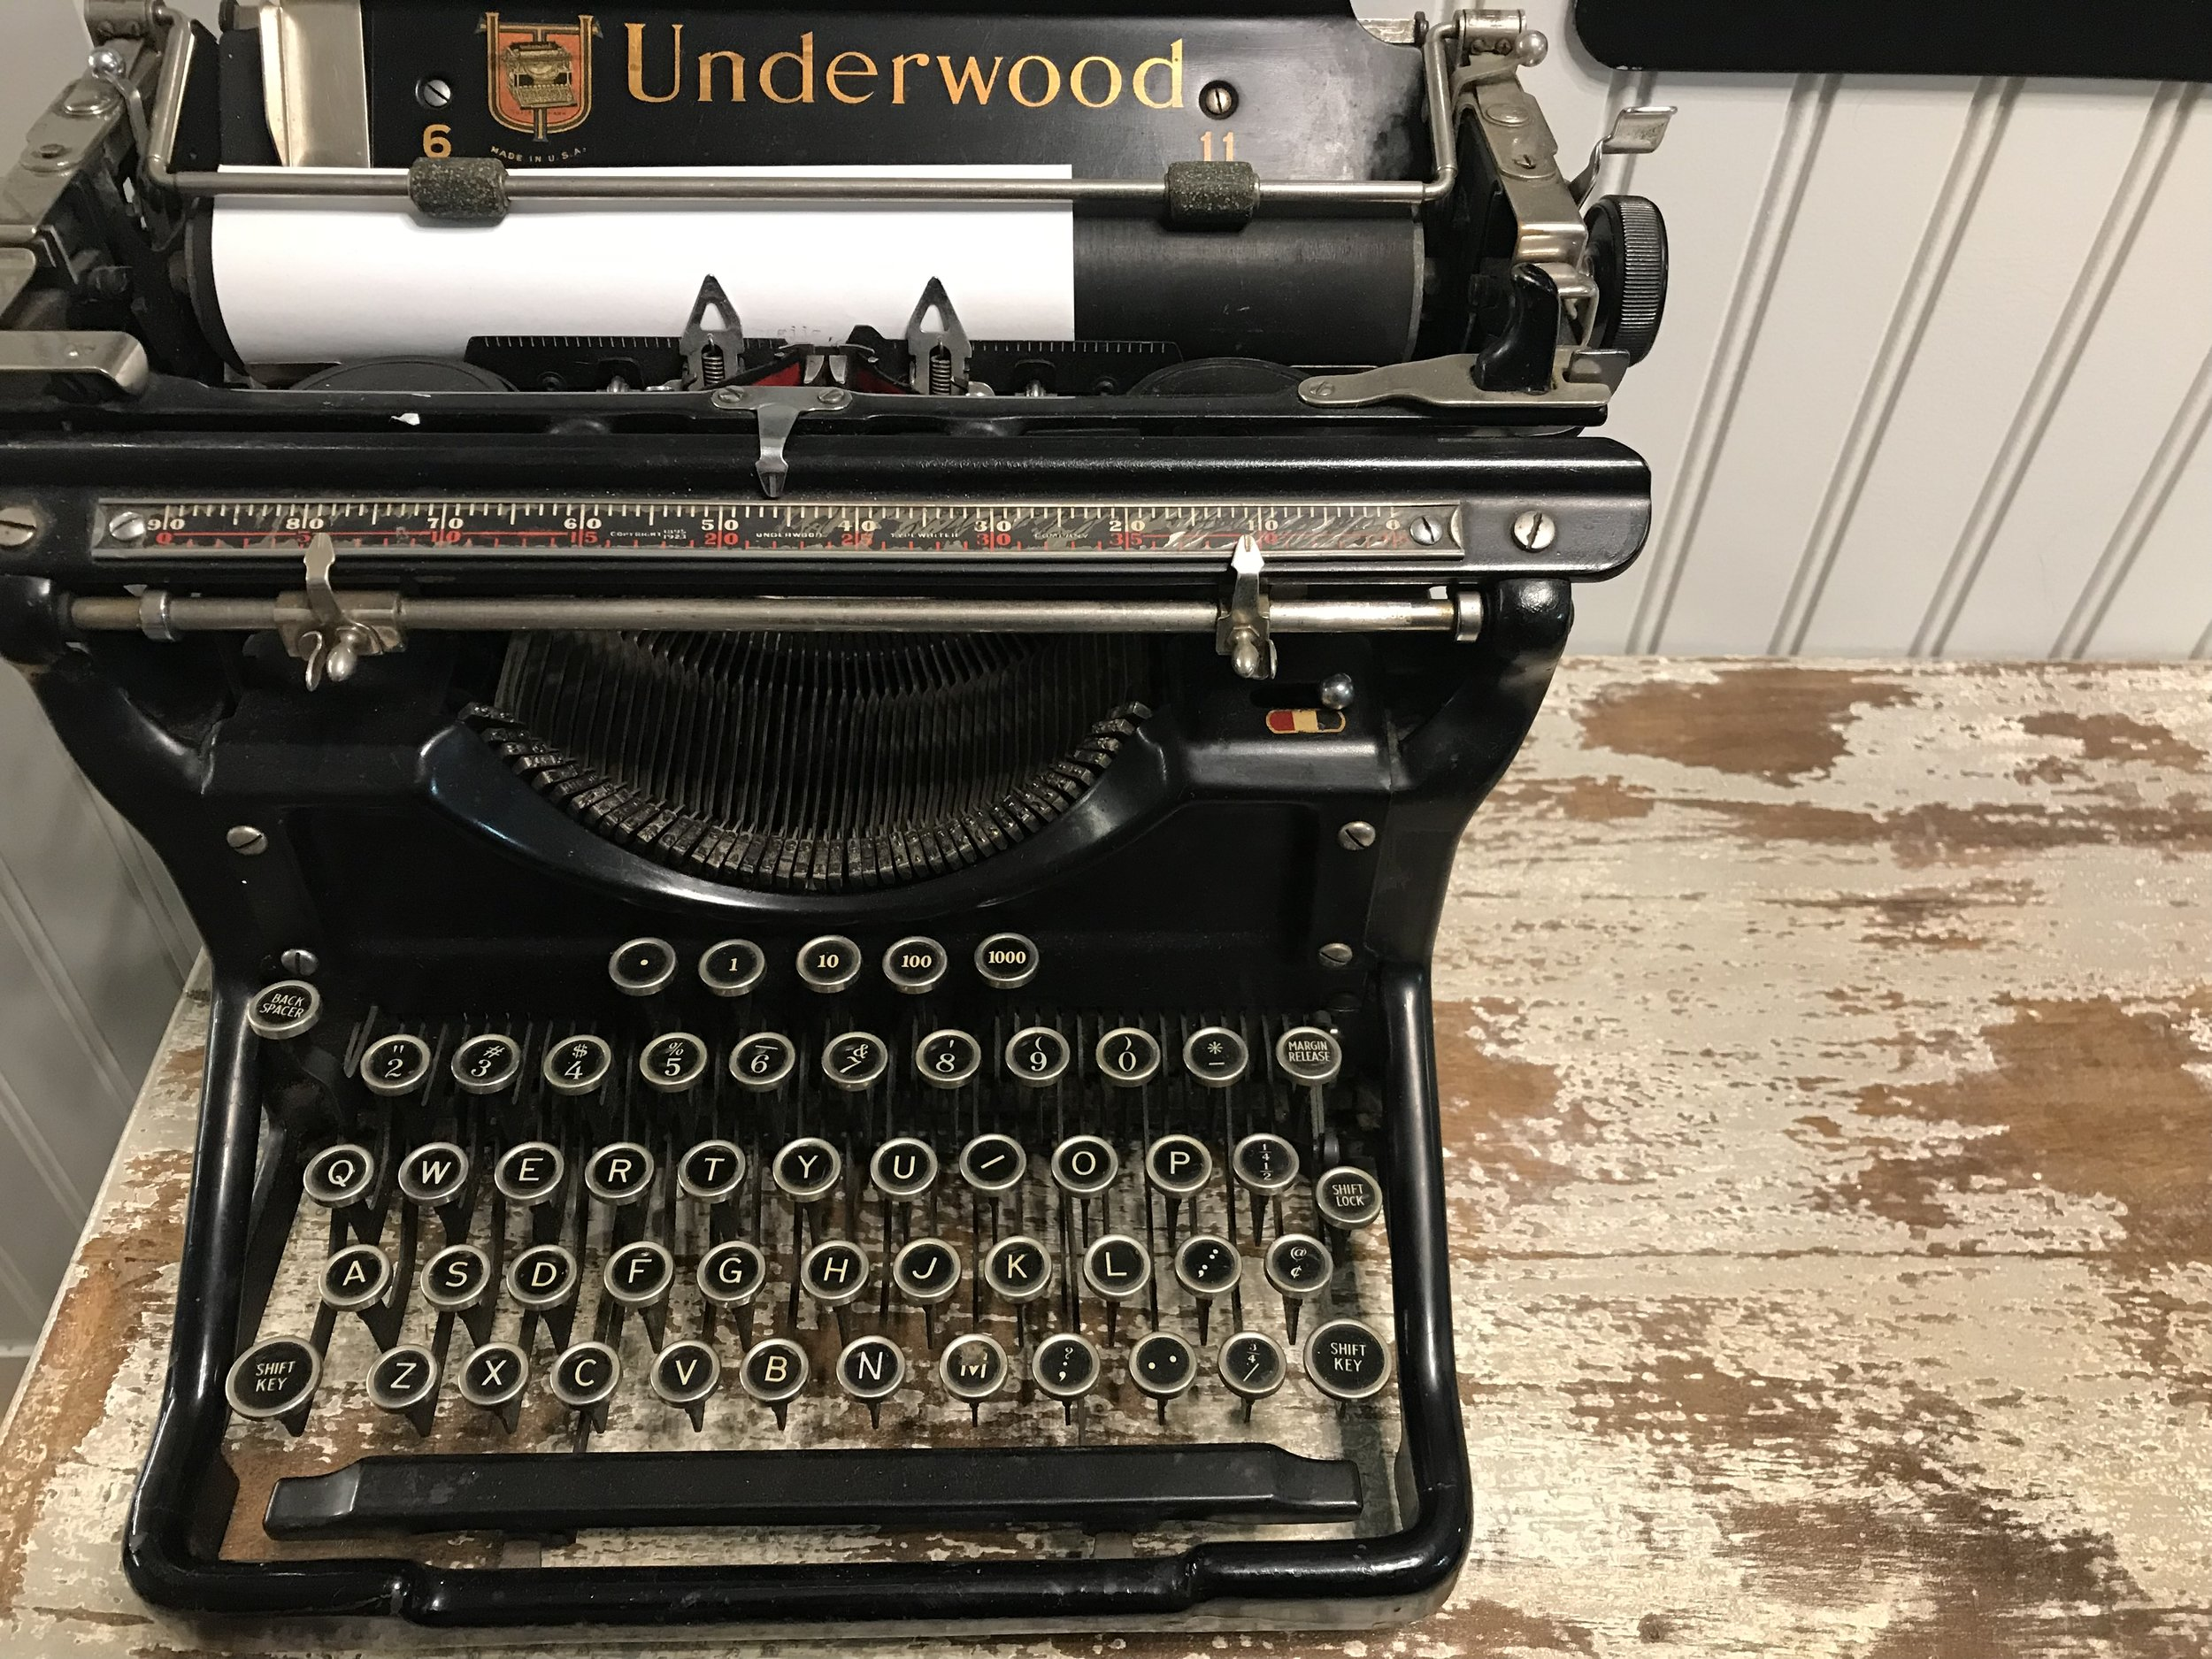 An Underwood typewriter, circa somewhere in the early 1900s.